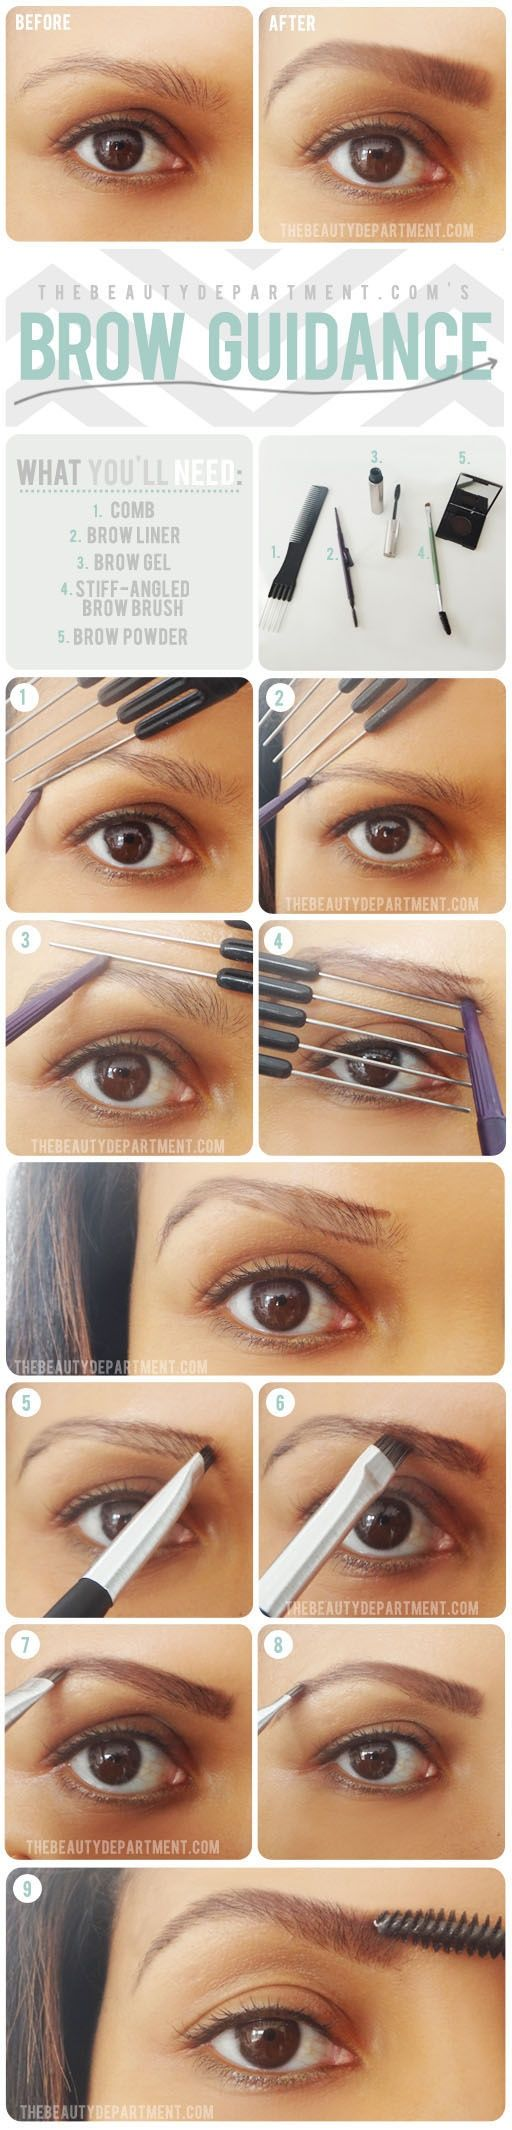 Great tutorial on creating an arch to your eyebrow as well as softly filling it in to look natural.